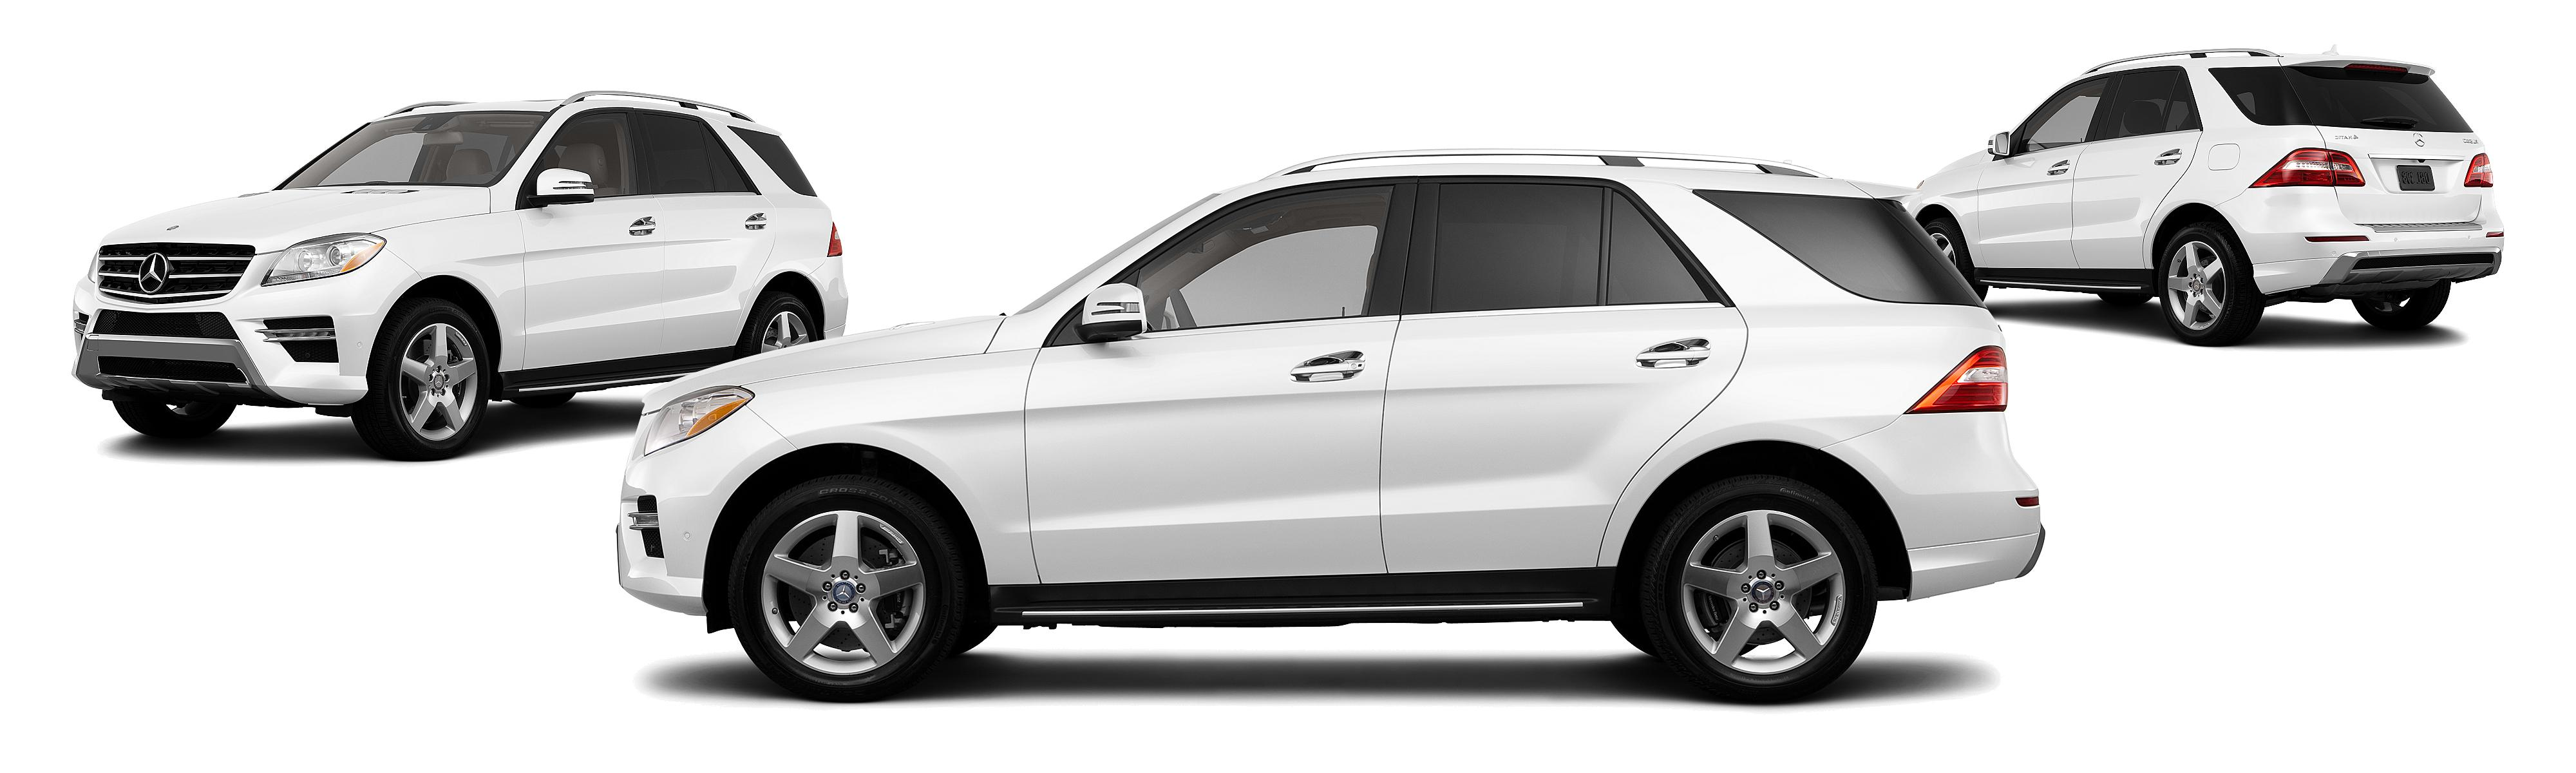 2013 mercedes benz m class awd ml 350 4matic 4dr suv research groovecar